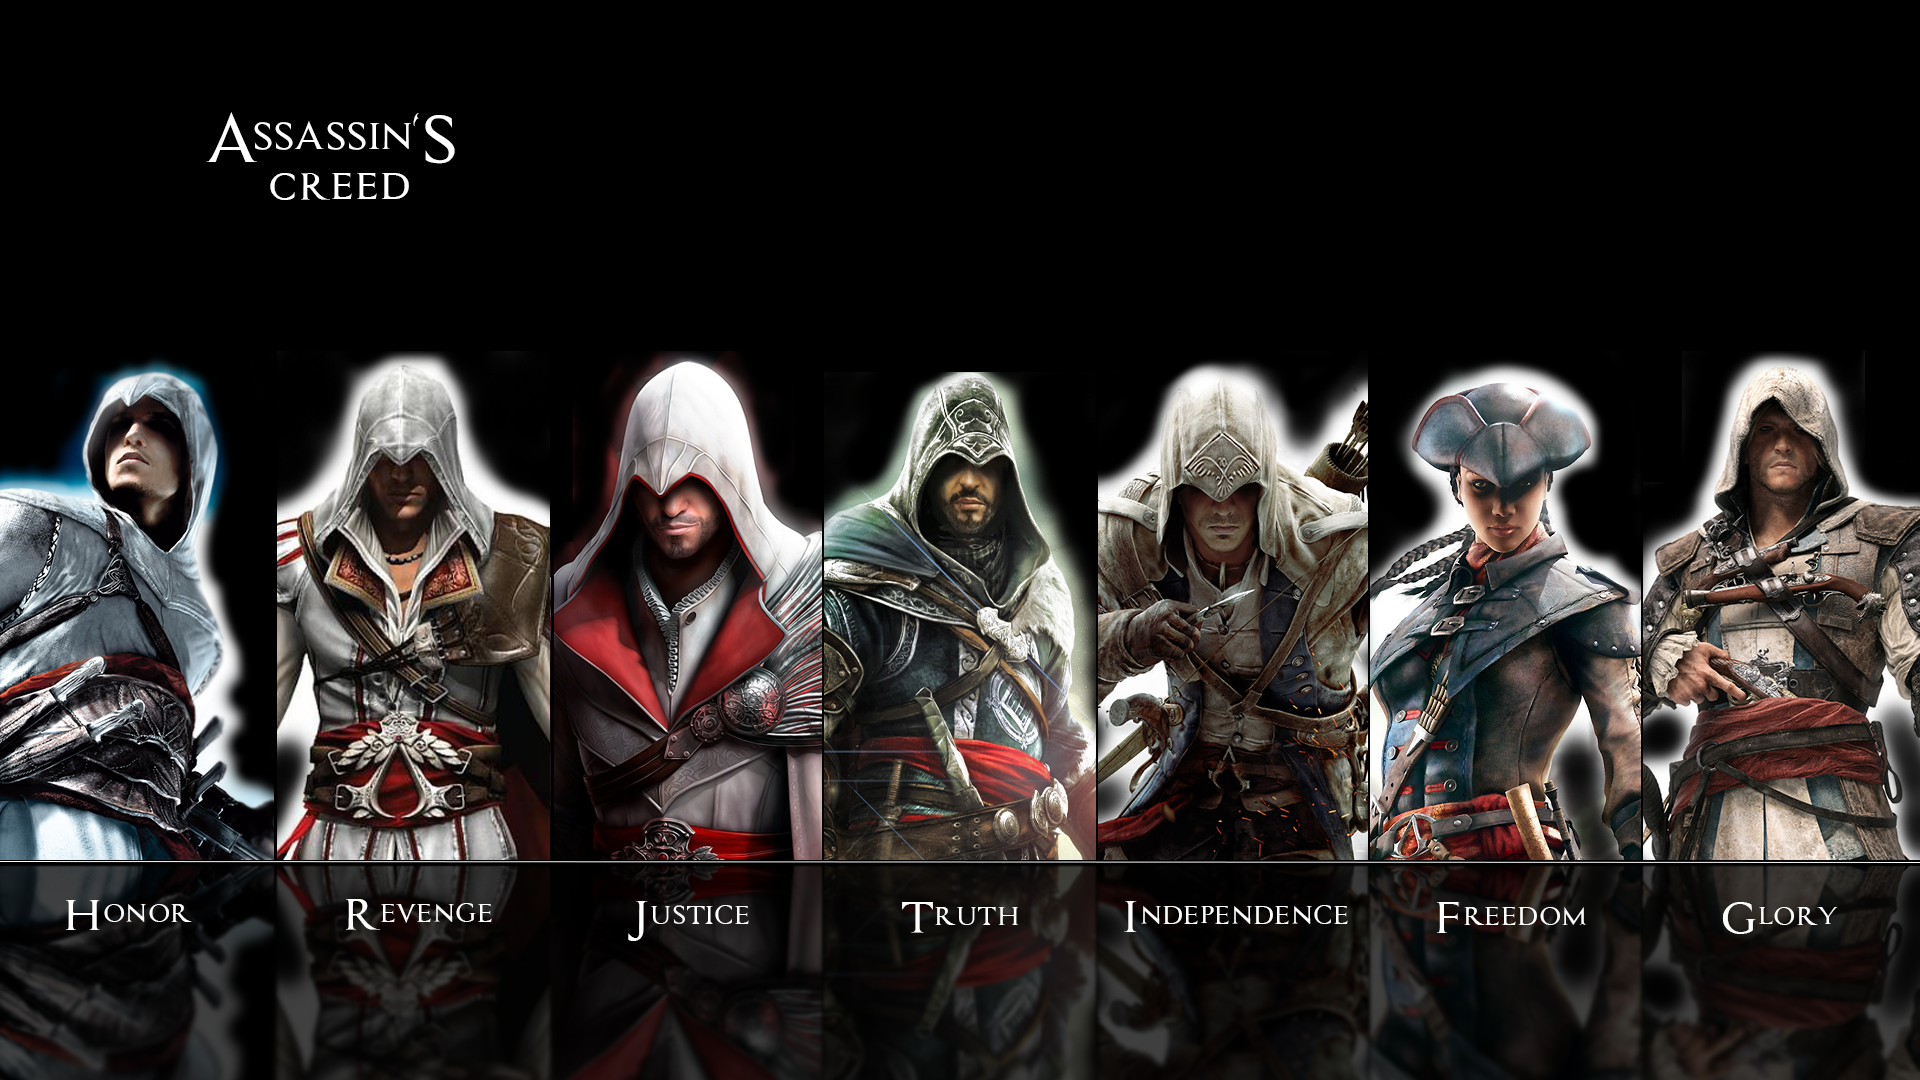 Wallpaper Assassin Creed Posted By Christopher Mercado